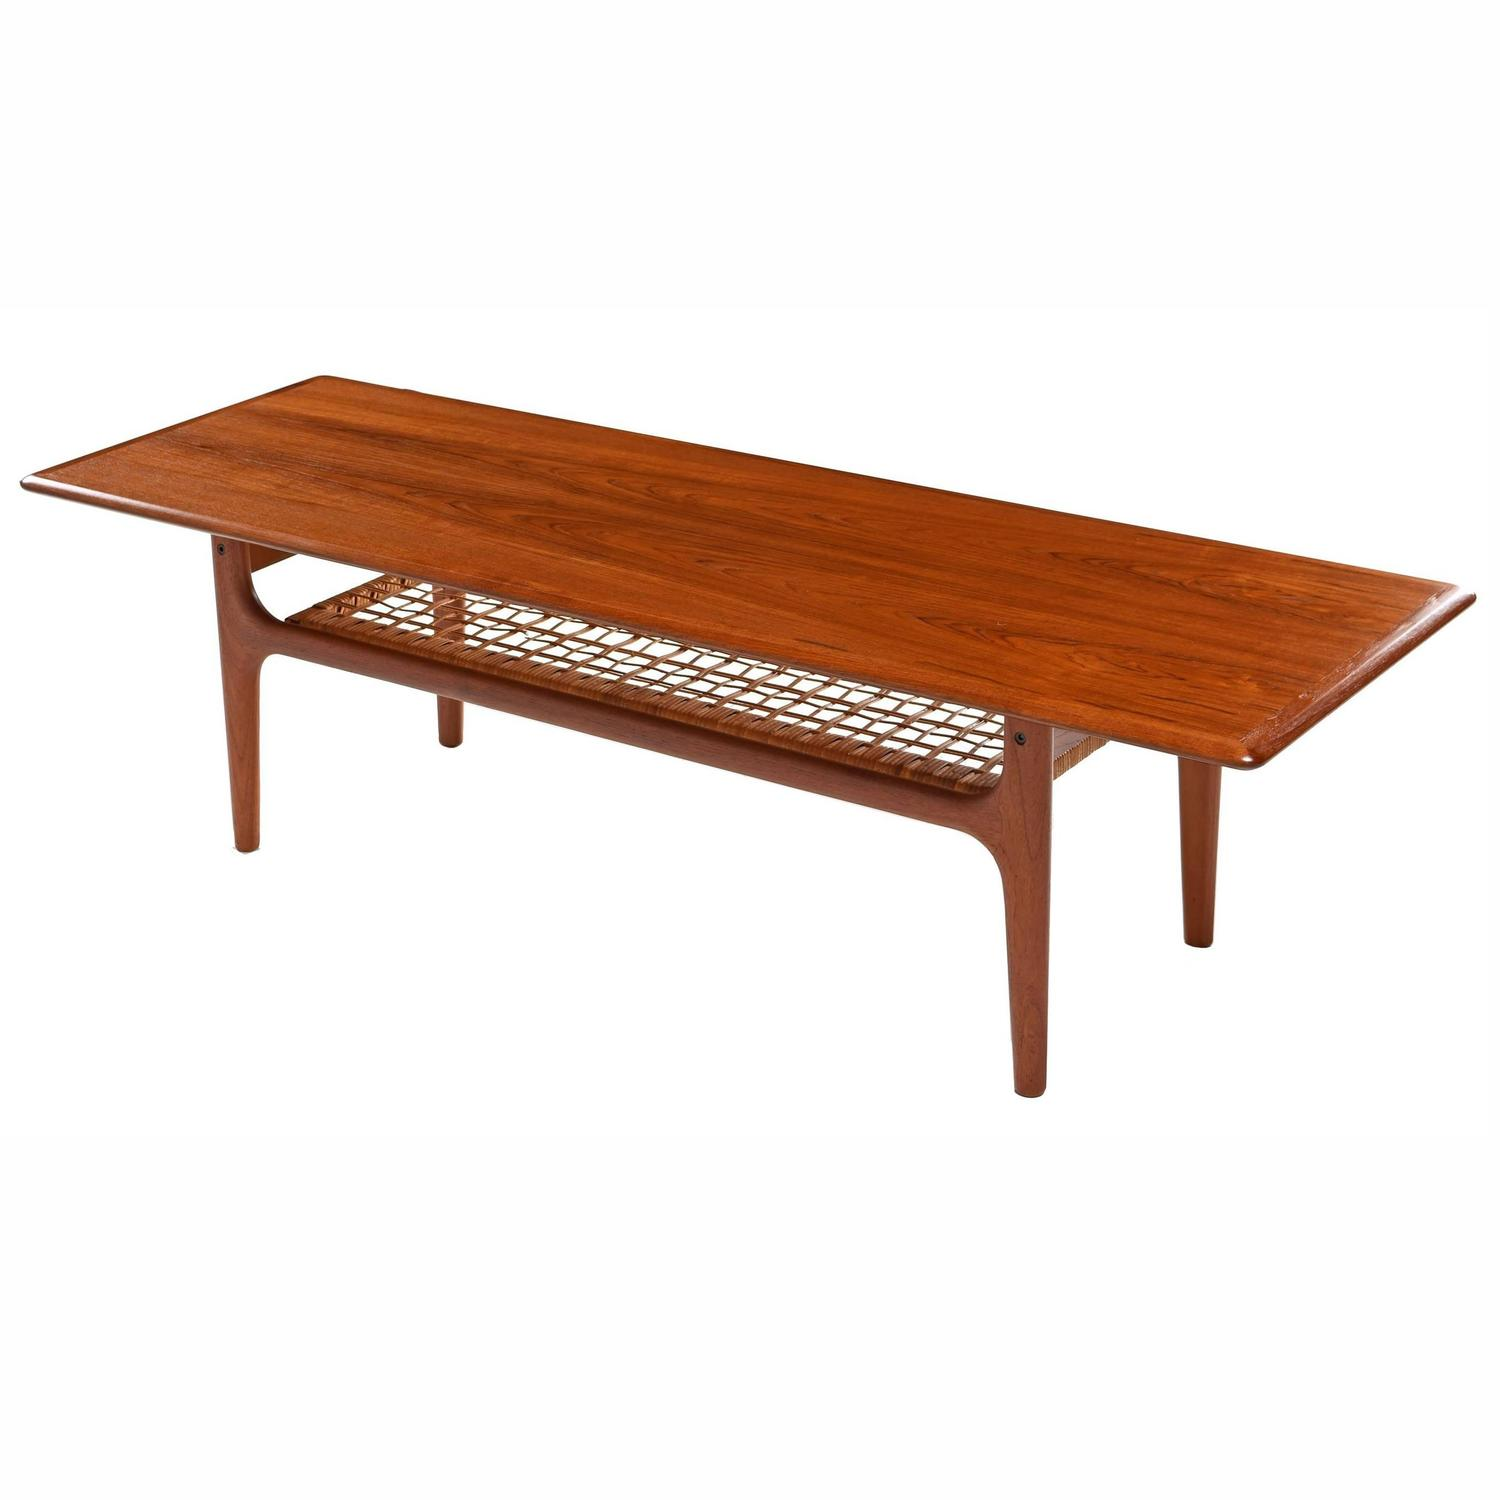 Scandinavian Modern Teak and Cane Coffee Table by Trioh M¸bler For